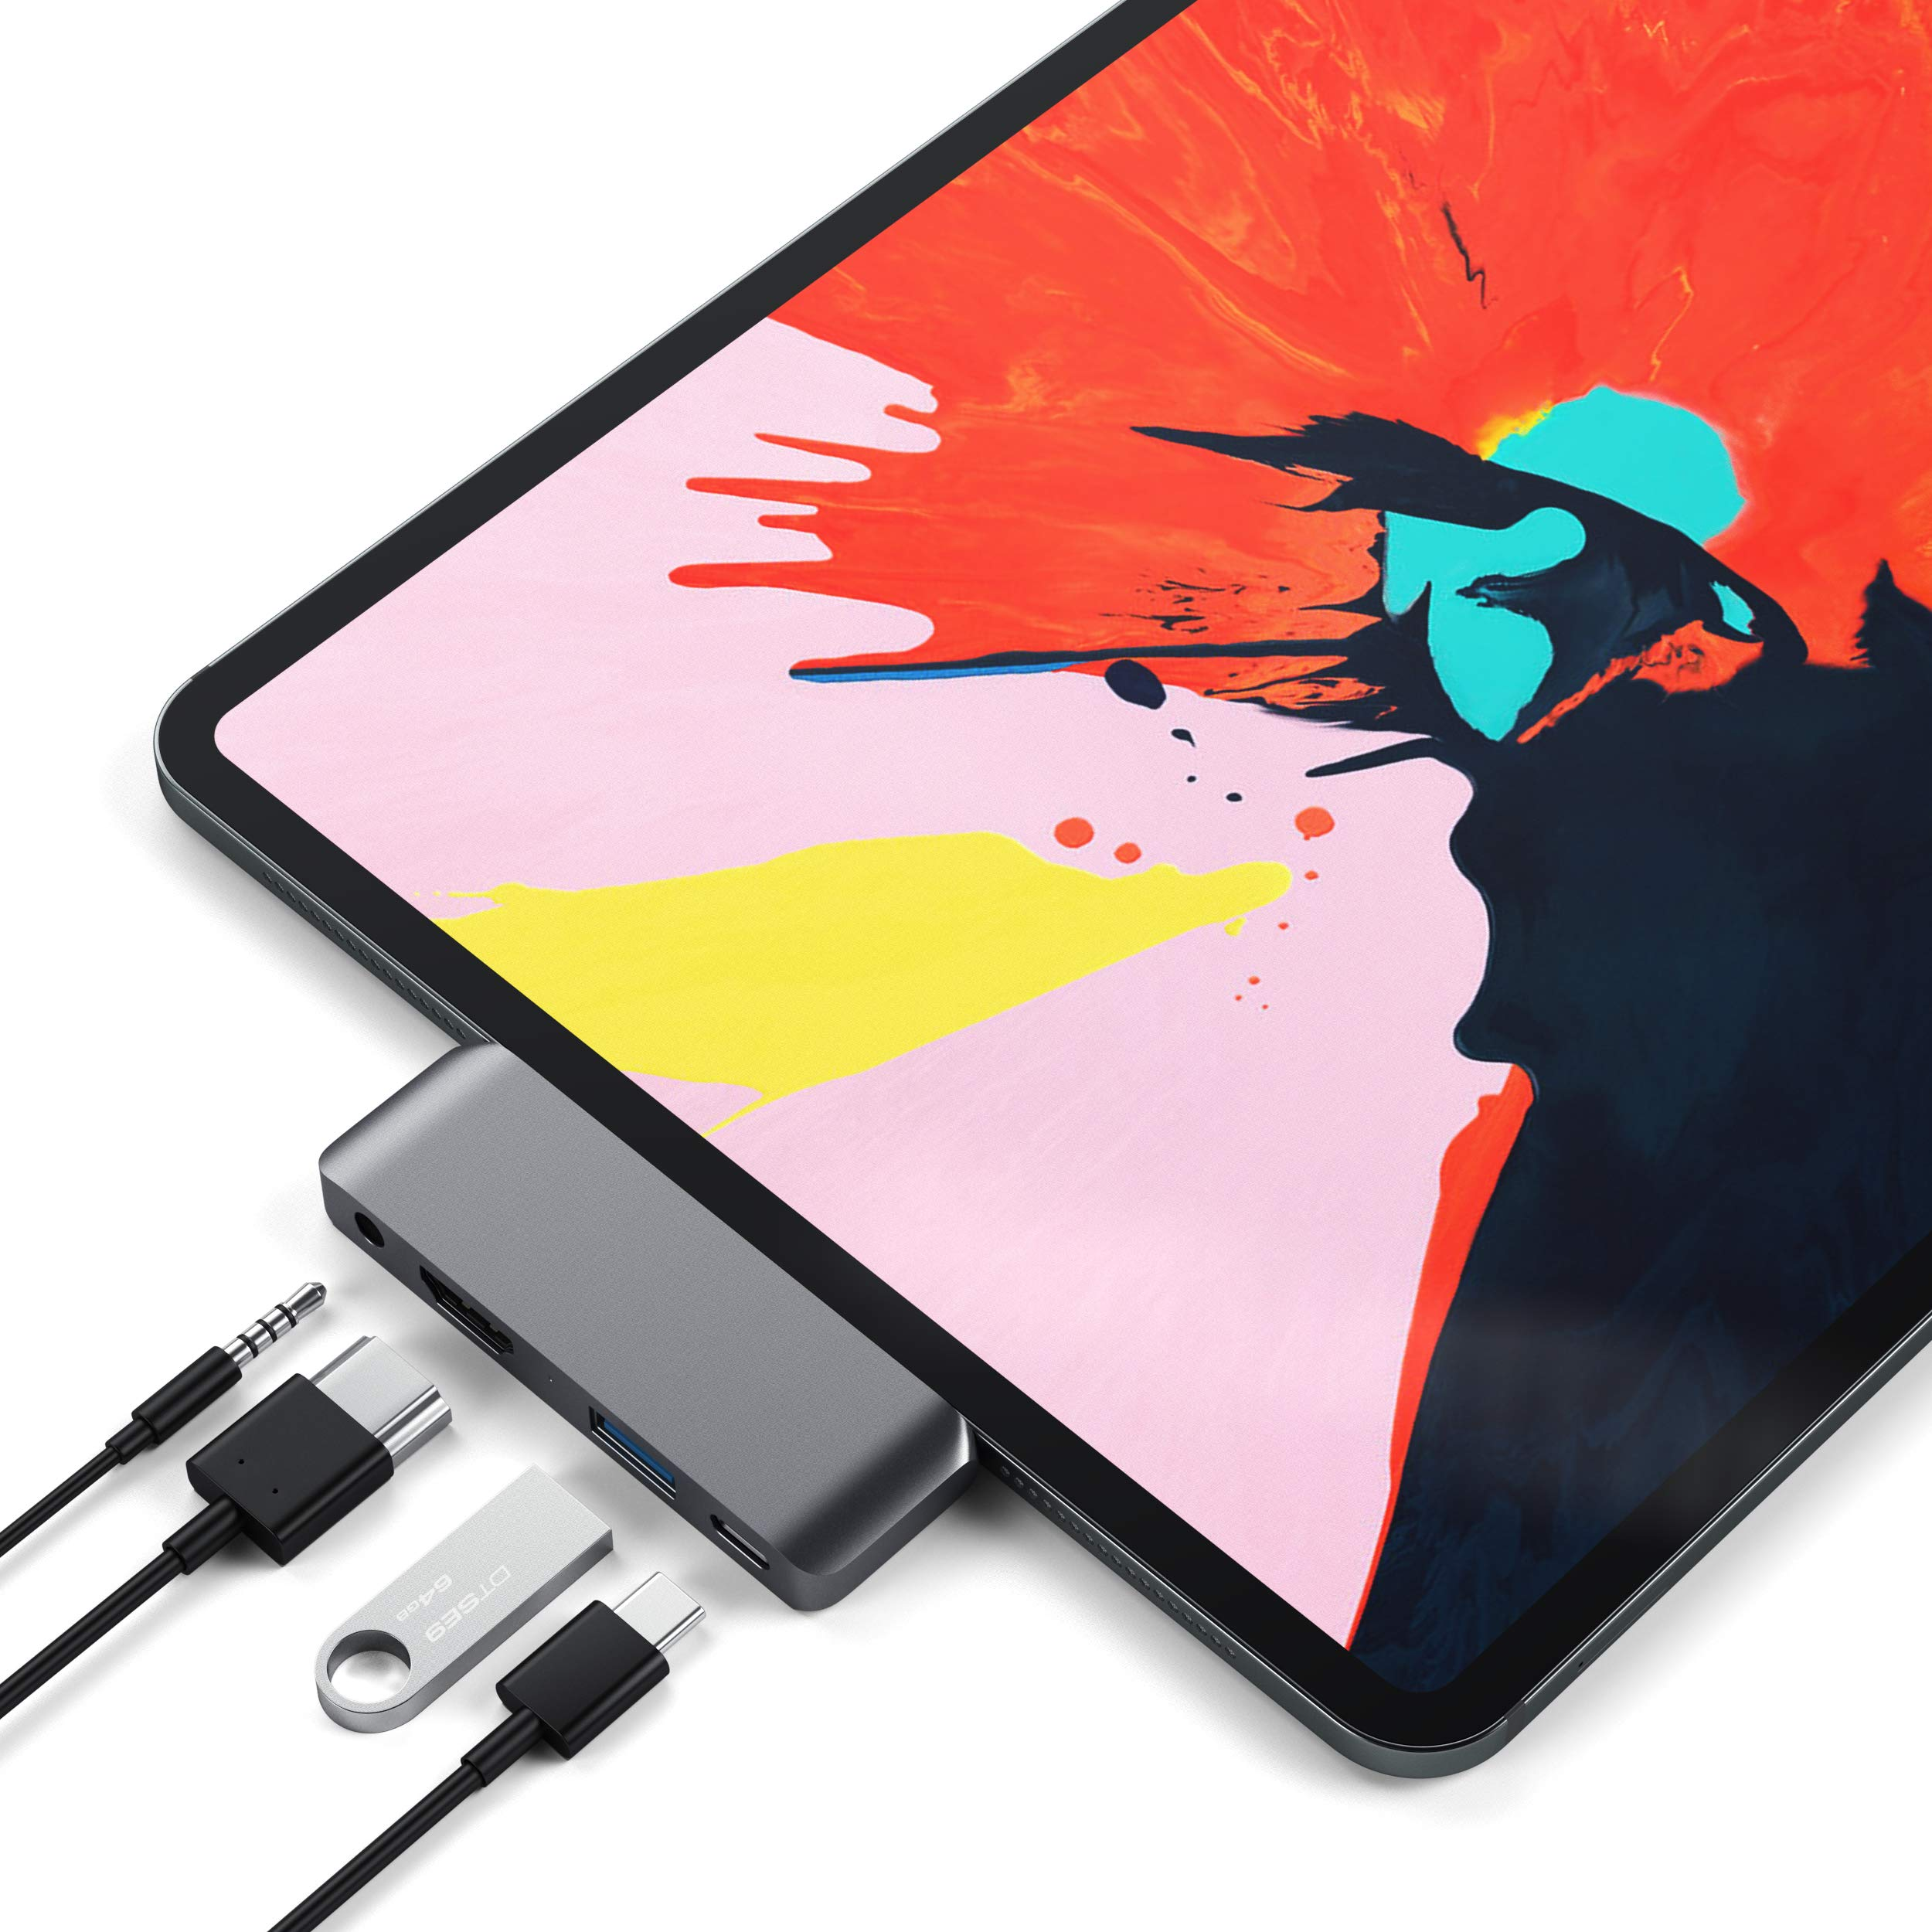 Satechi Aluminum Type-C Mobile Pro Hub Adapter with USB-C PD Charging, 4K HDMI, USB 3.0 & 3.5mm Headphone Jack - Compatible with 2018 iPad Pro, Microsoft Surface Go and More (Space Gray)